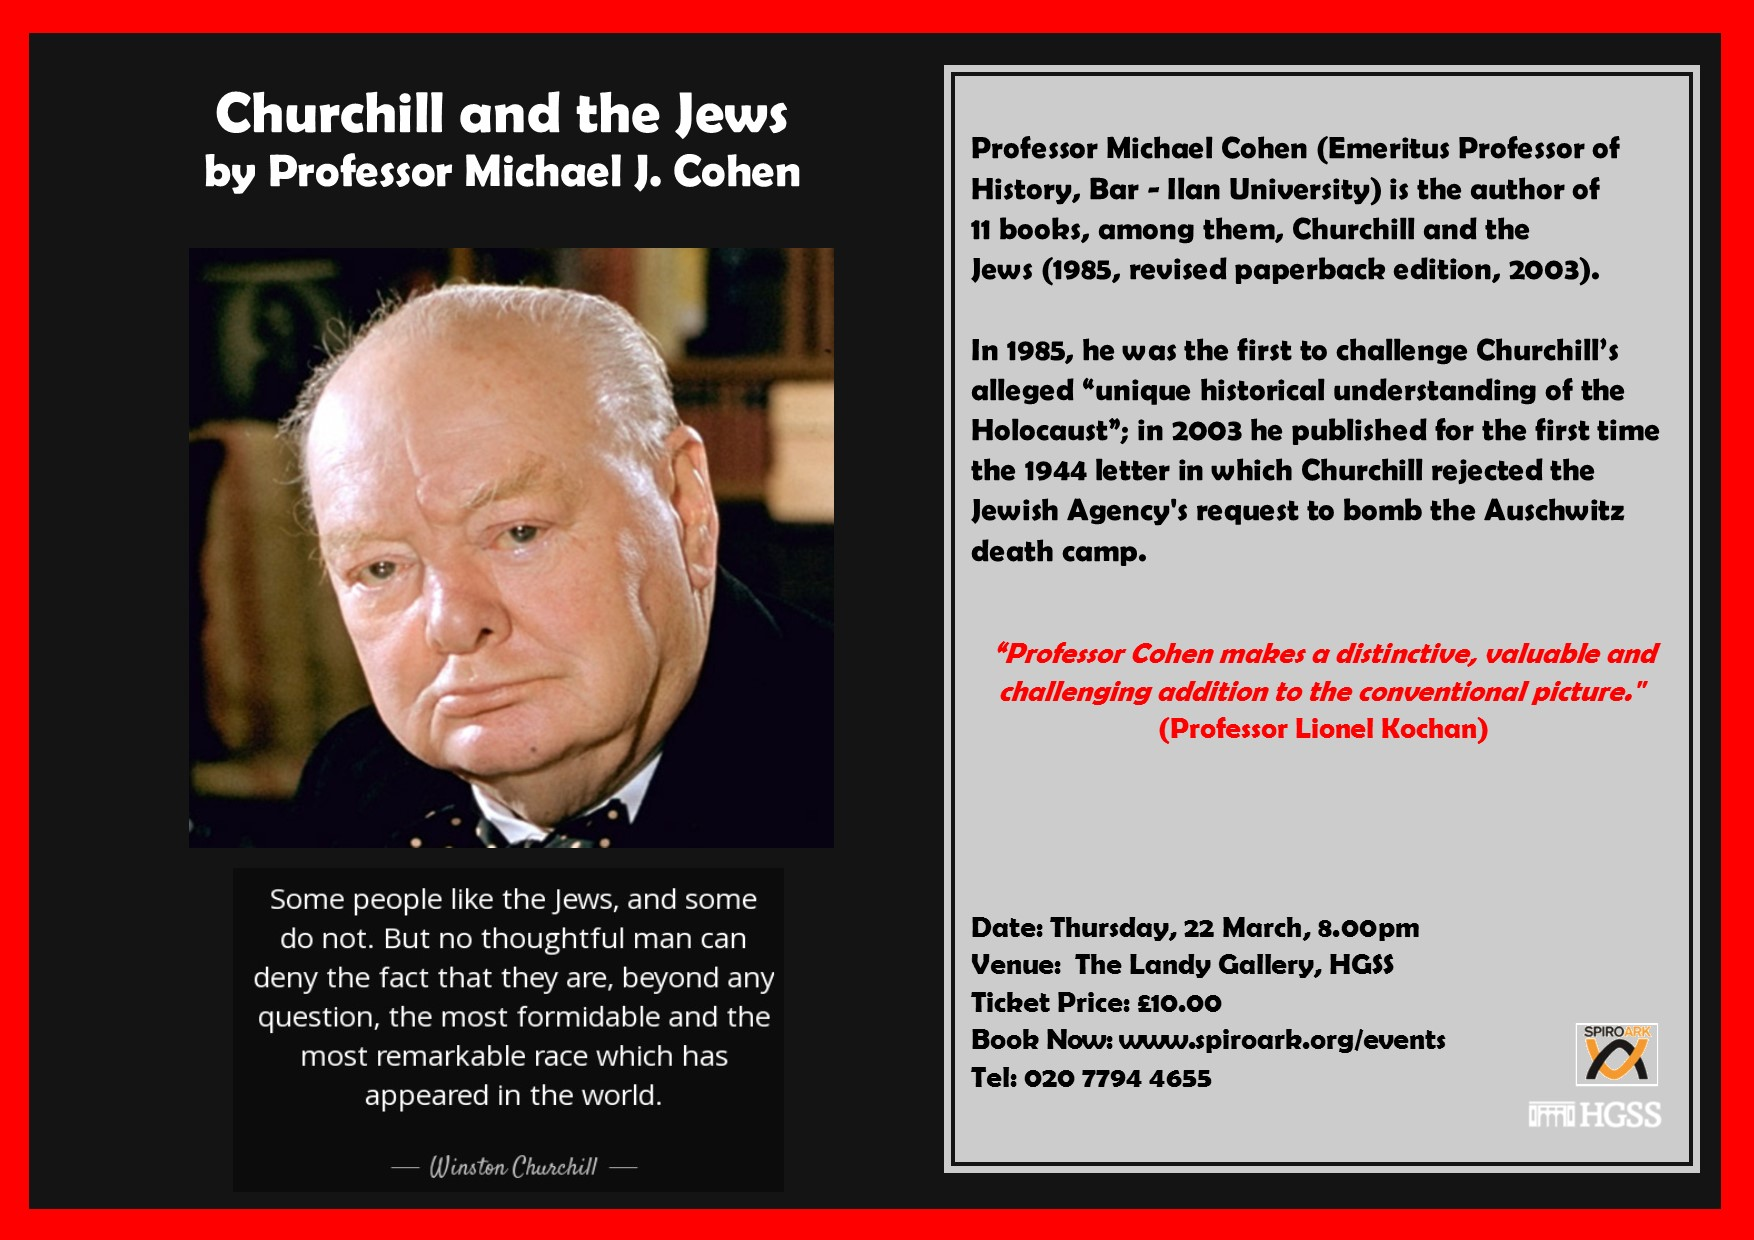 Spiro Ark – Churchill and the Jews @ The Landy Gallery